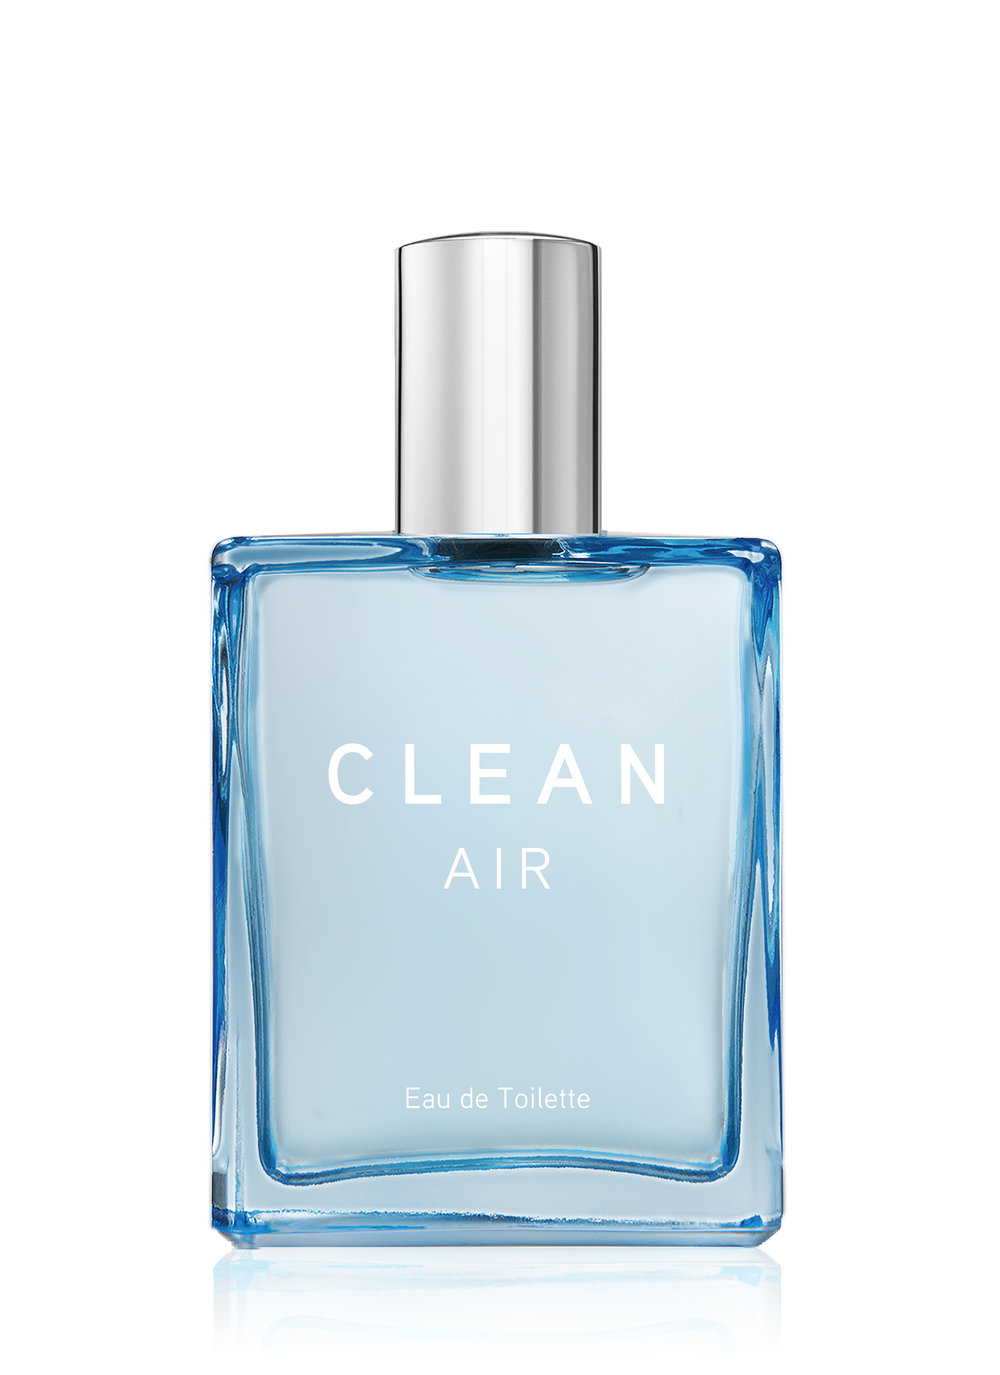 EDT_AIR_BOTTLE_122117.jpg